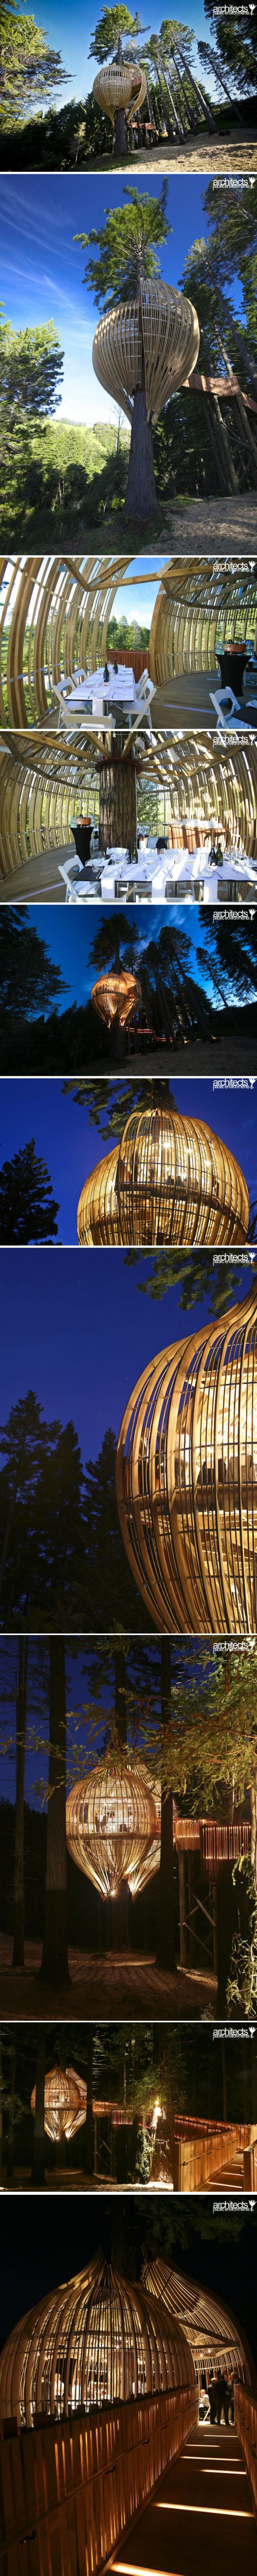 a brief description of the restaurant the yellow treehouse 15 most incredible tree houses in the world:yellow treehouse restaurant auckland, new zealand if fine cuisine and treehouses are your passions in life, then you.